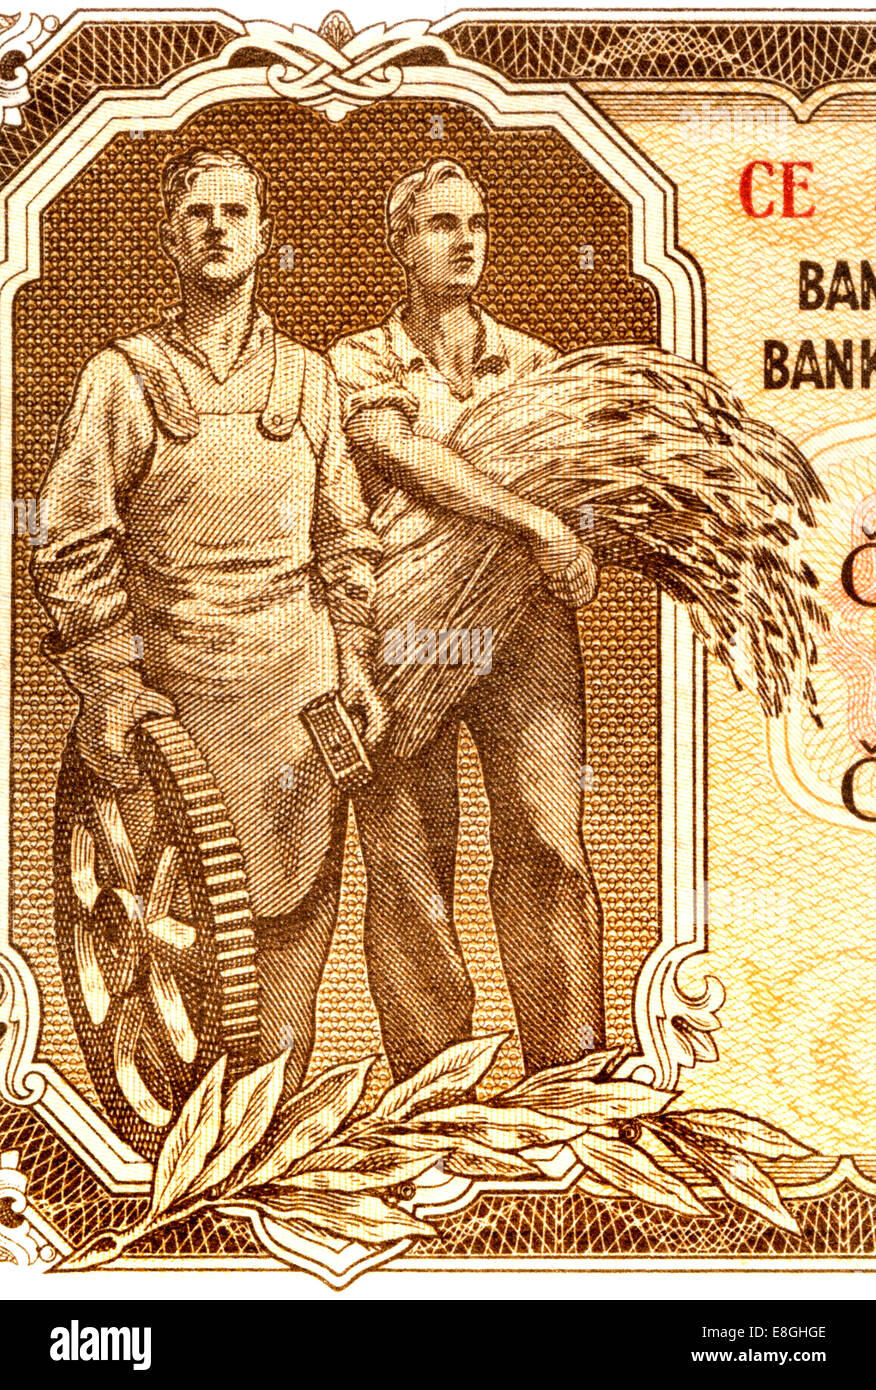 Detail from a 1953 Czechoslovakian 100 crown / Korun banknote showing an engineer and a farmer - Stock Image